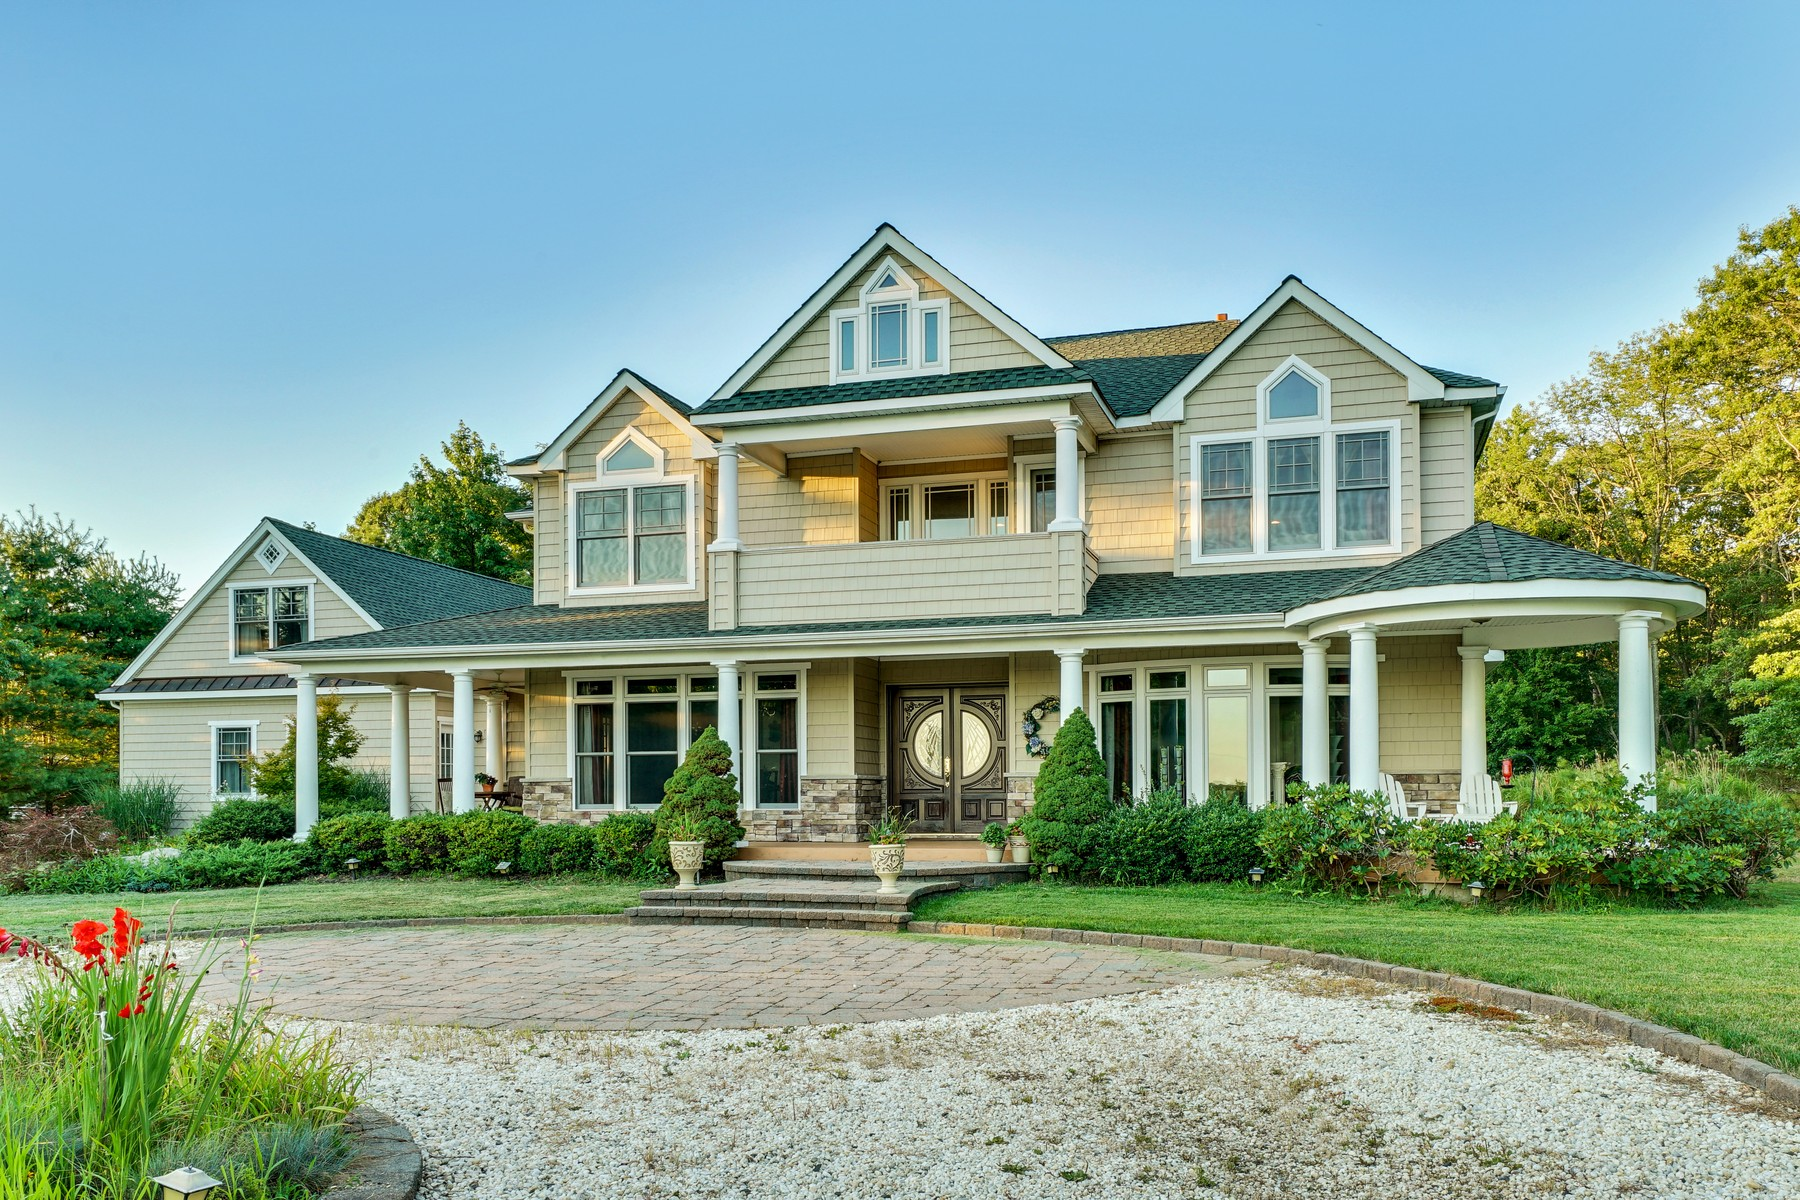 Maison unifamiliale pour l Vente à Inspired by Natural Landscape 4148 Atlantic Ave Wall, New Jersey 07719 États-Unis